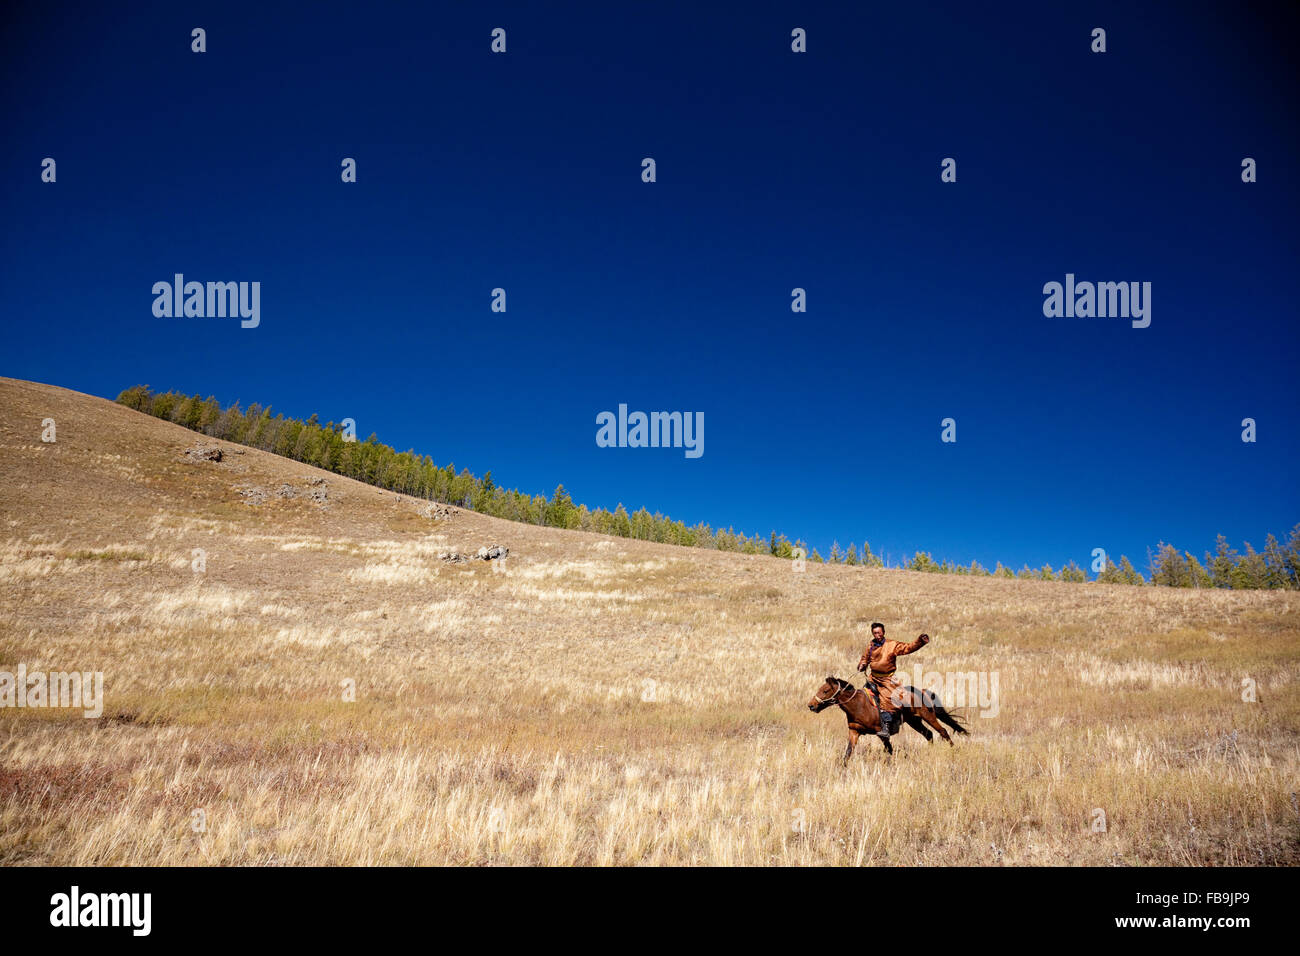 A herder riding at a gallop through Gorkhi Terelj National Park, Mongolia. - Stock Image